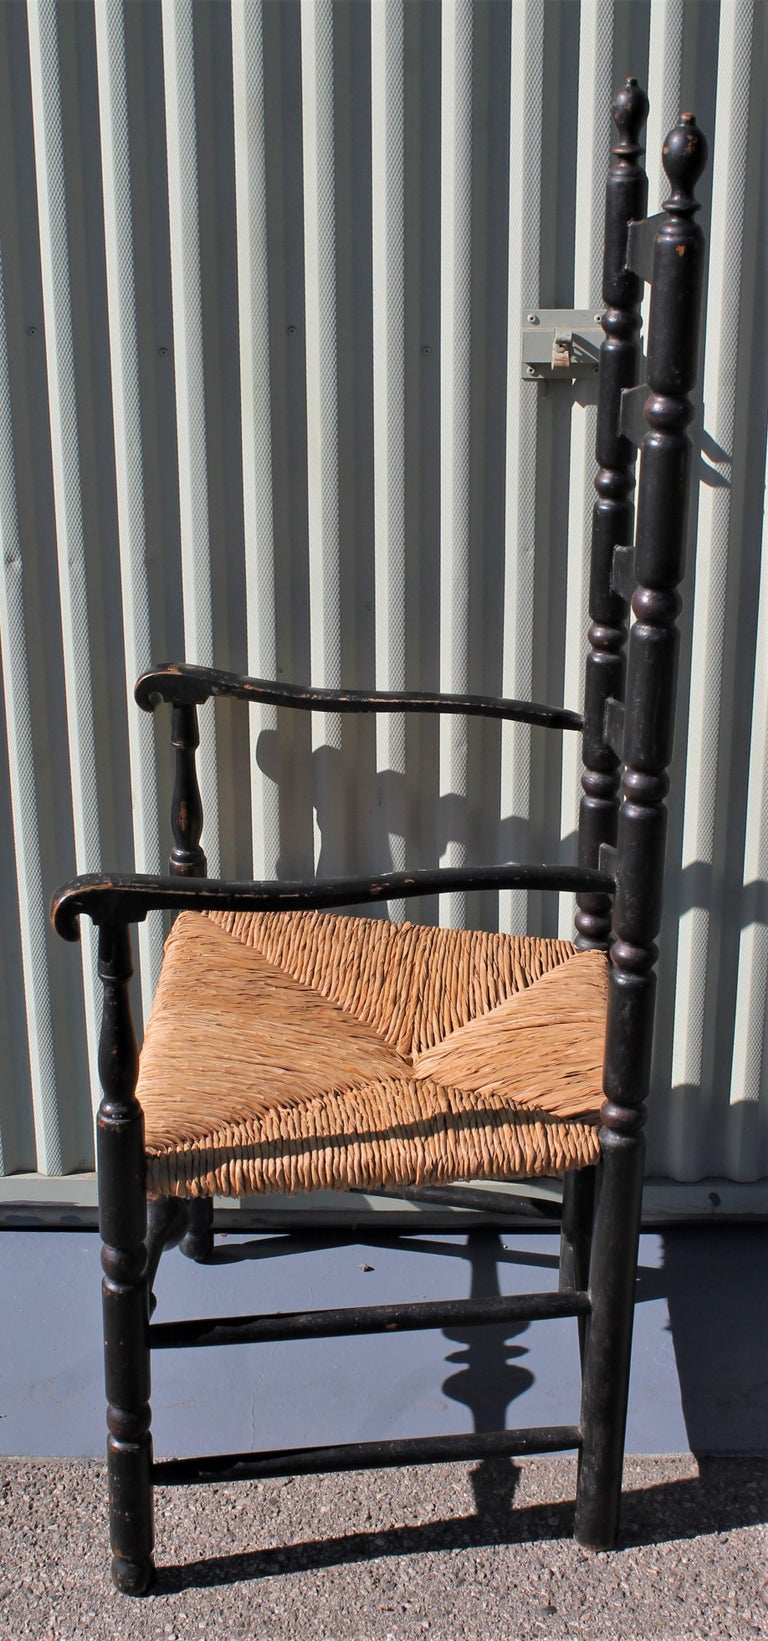 This original black painted 18th century ladder back chair has the original rush painted chair. The chair is in very good condition.